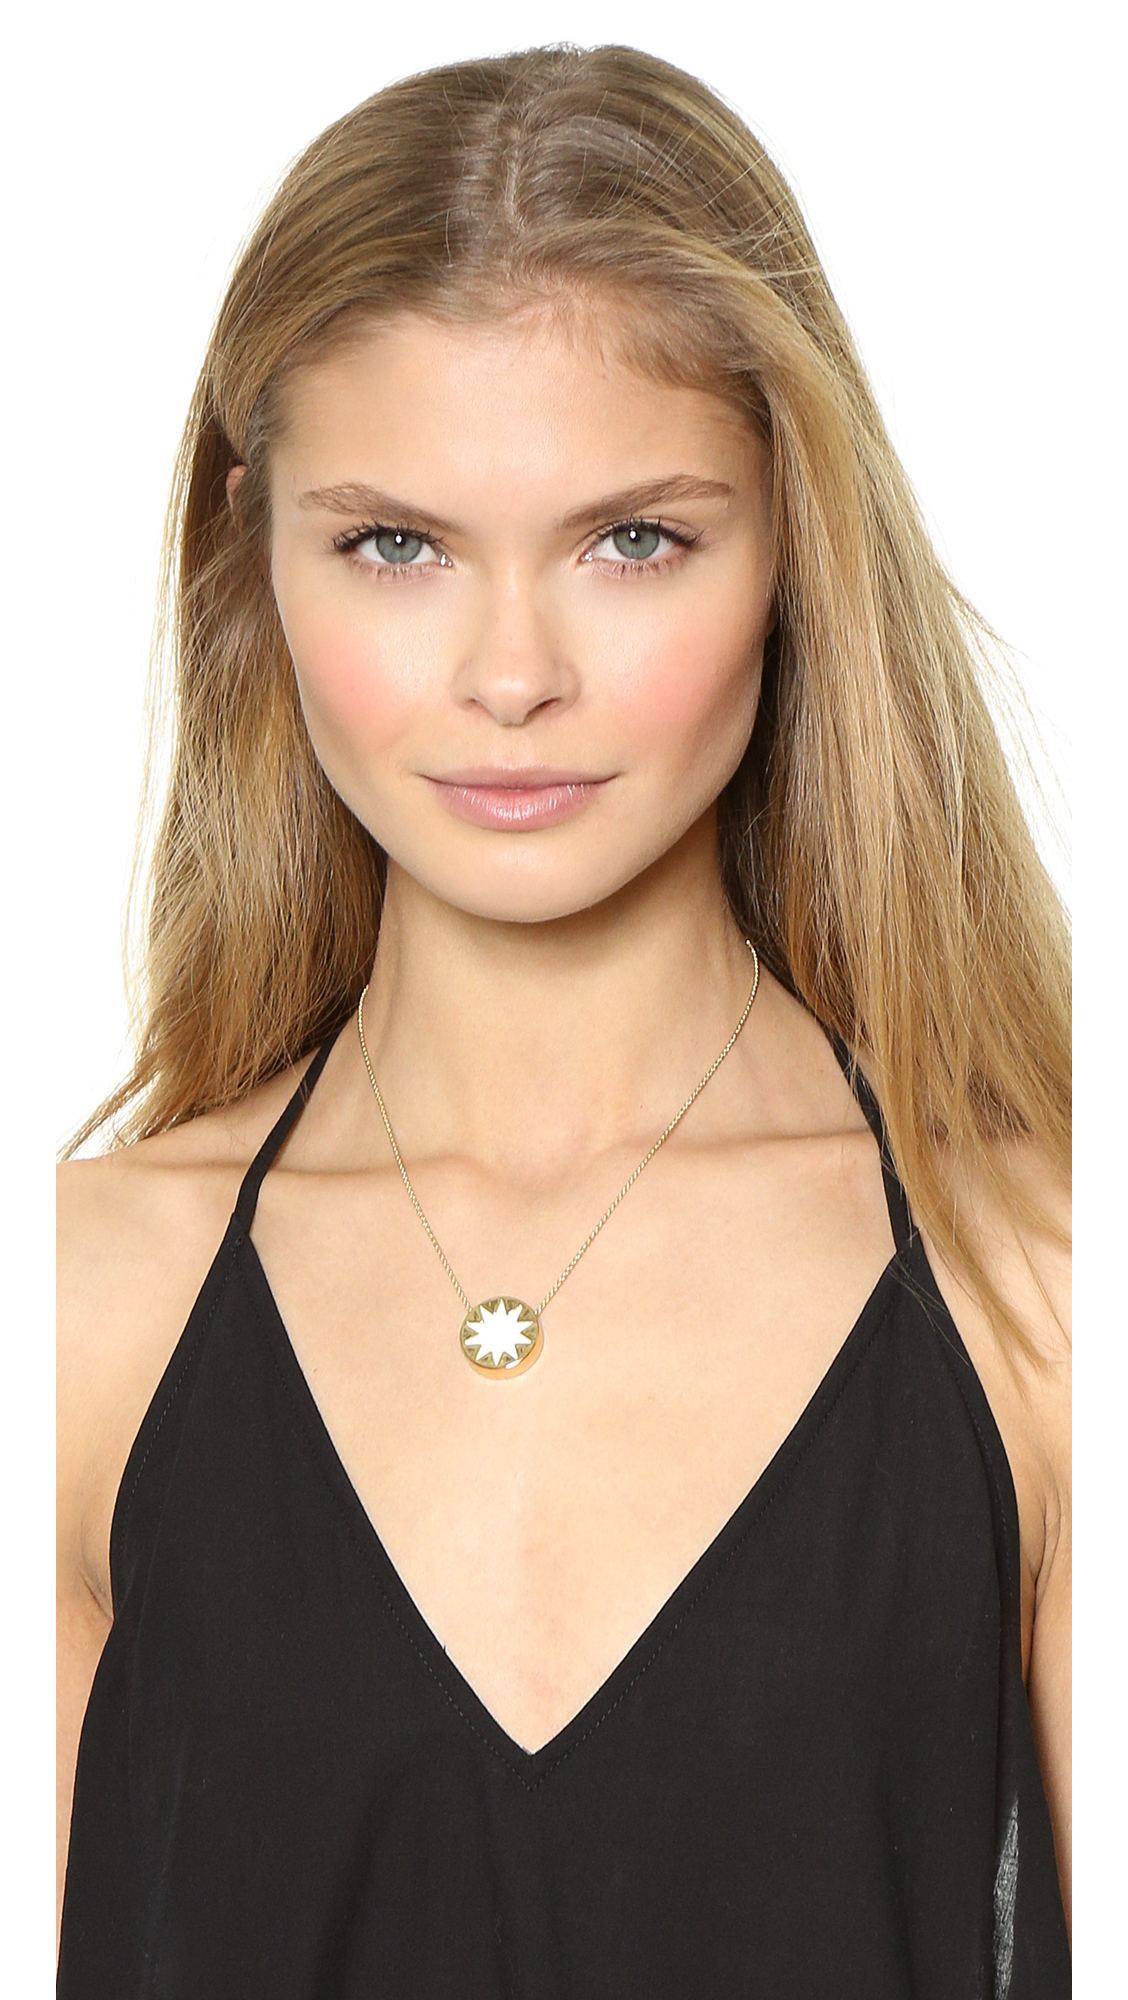 Lyst house of harlow 1960 mini sunburst pendant necklace in metallic gallery mozeypictures Image collections